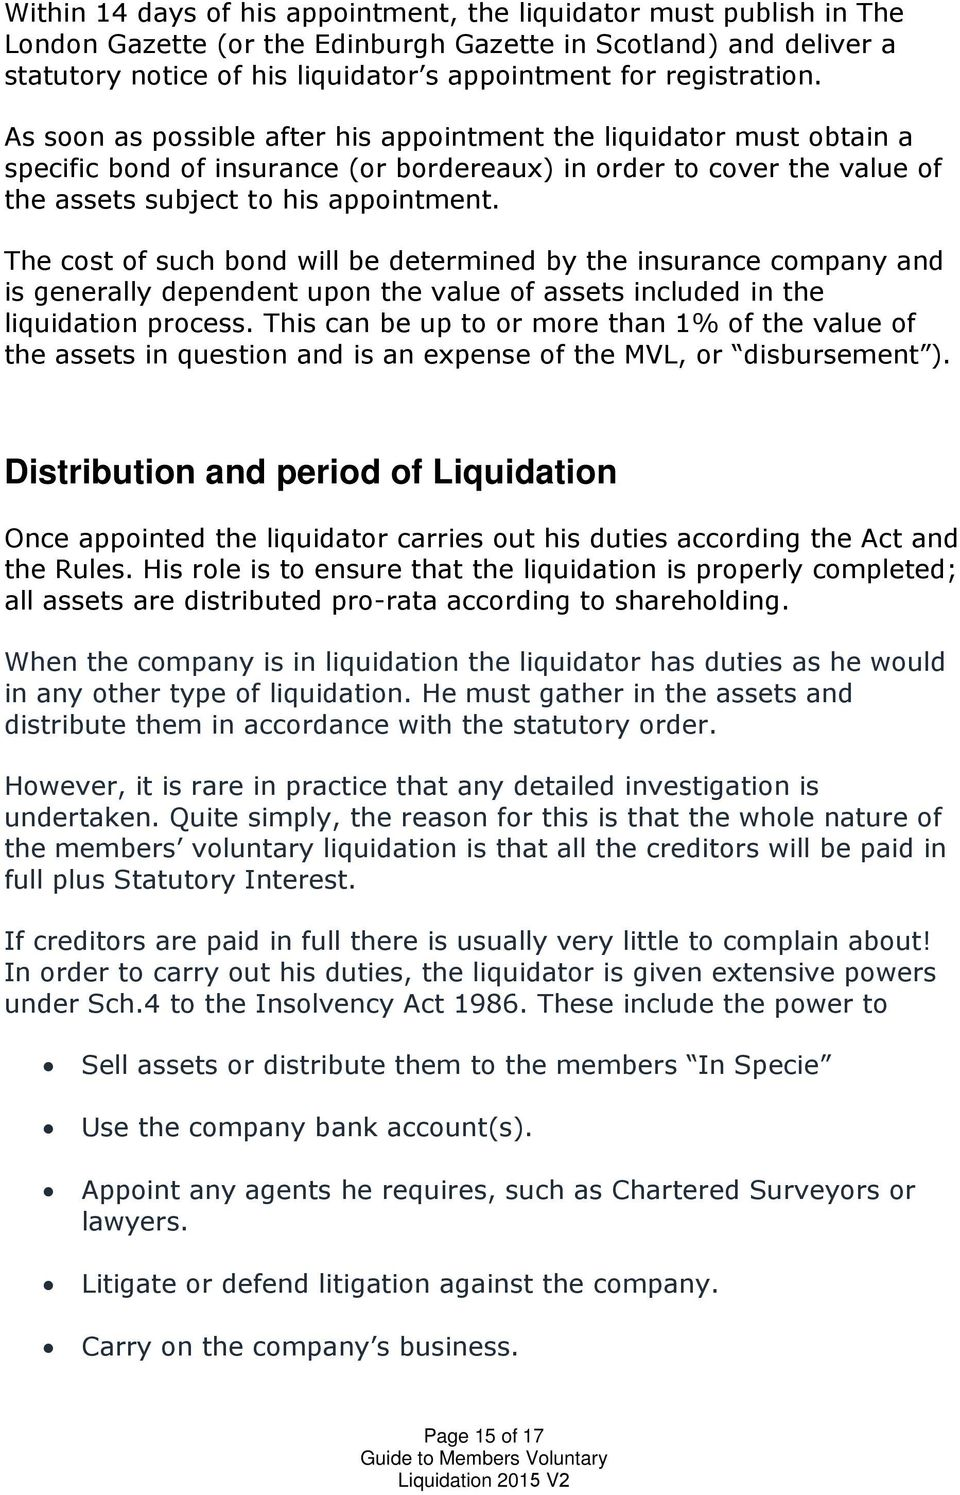 The cost of such bond will be determined by the insurance company and is generally dependent upon the value of assets included in the liquidation process.